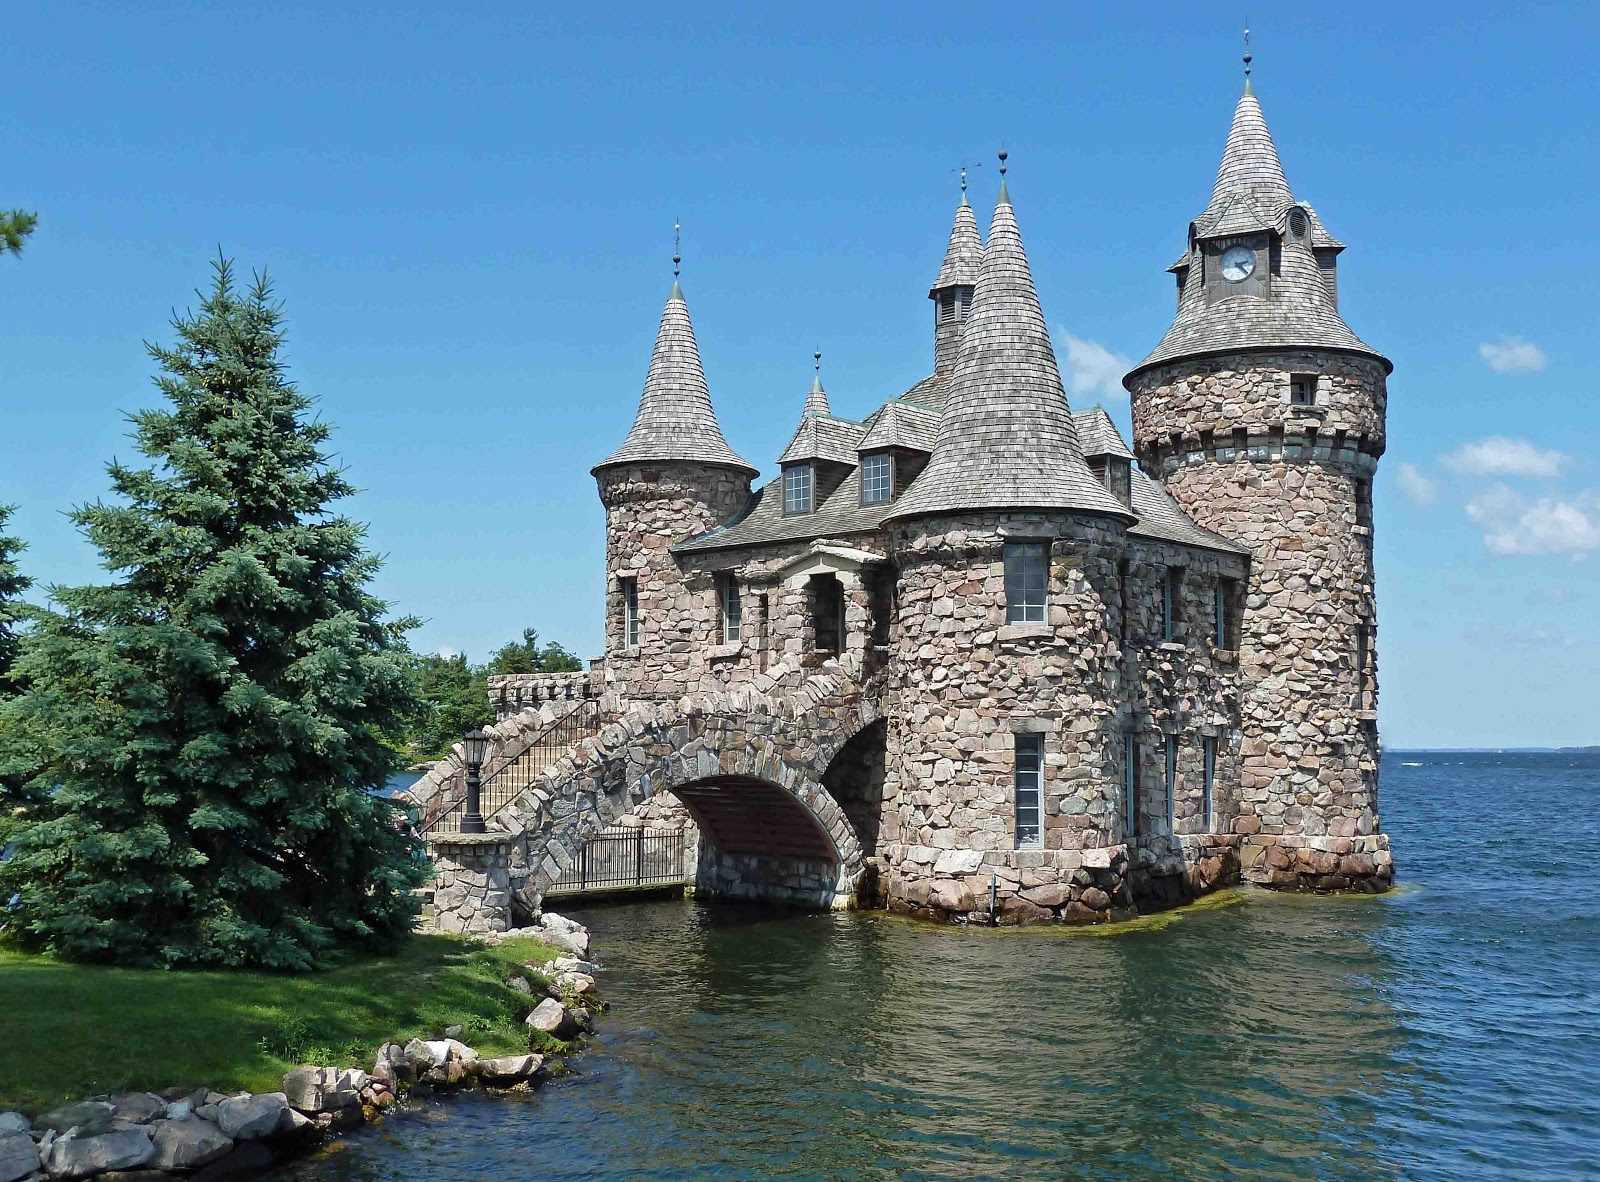 Last dance boldt castle heart island 1000 islands for Small castle house plans